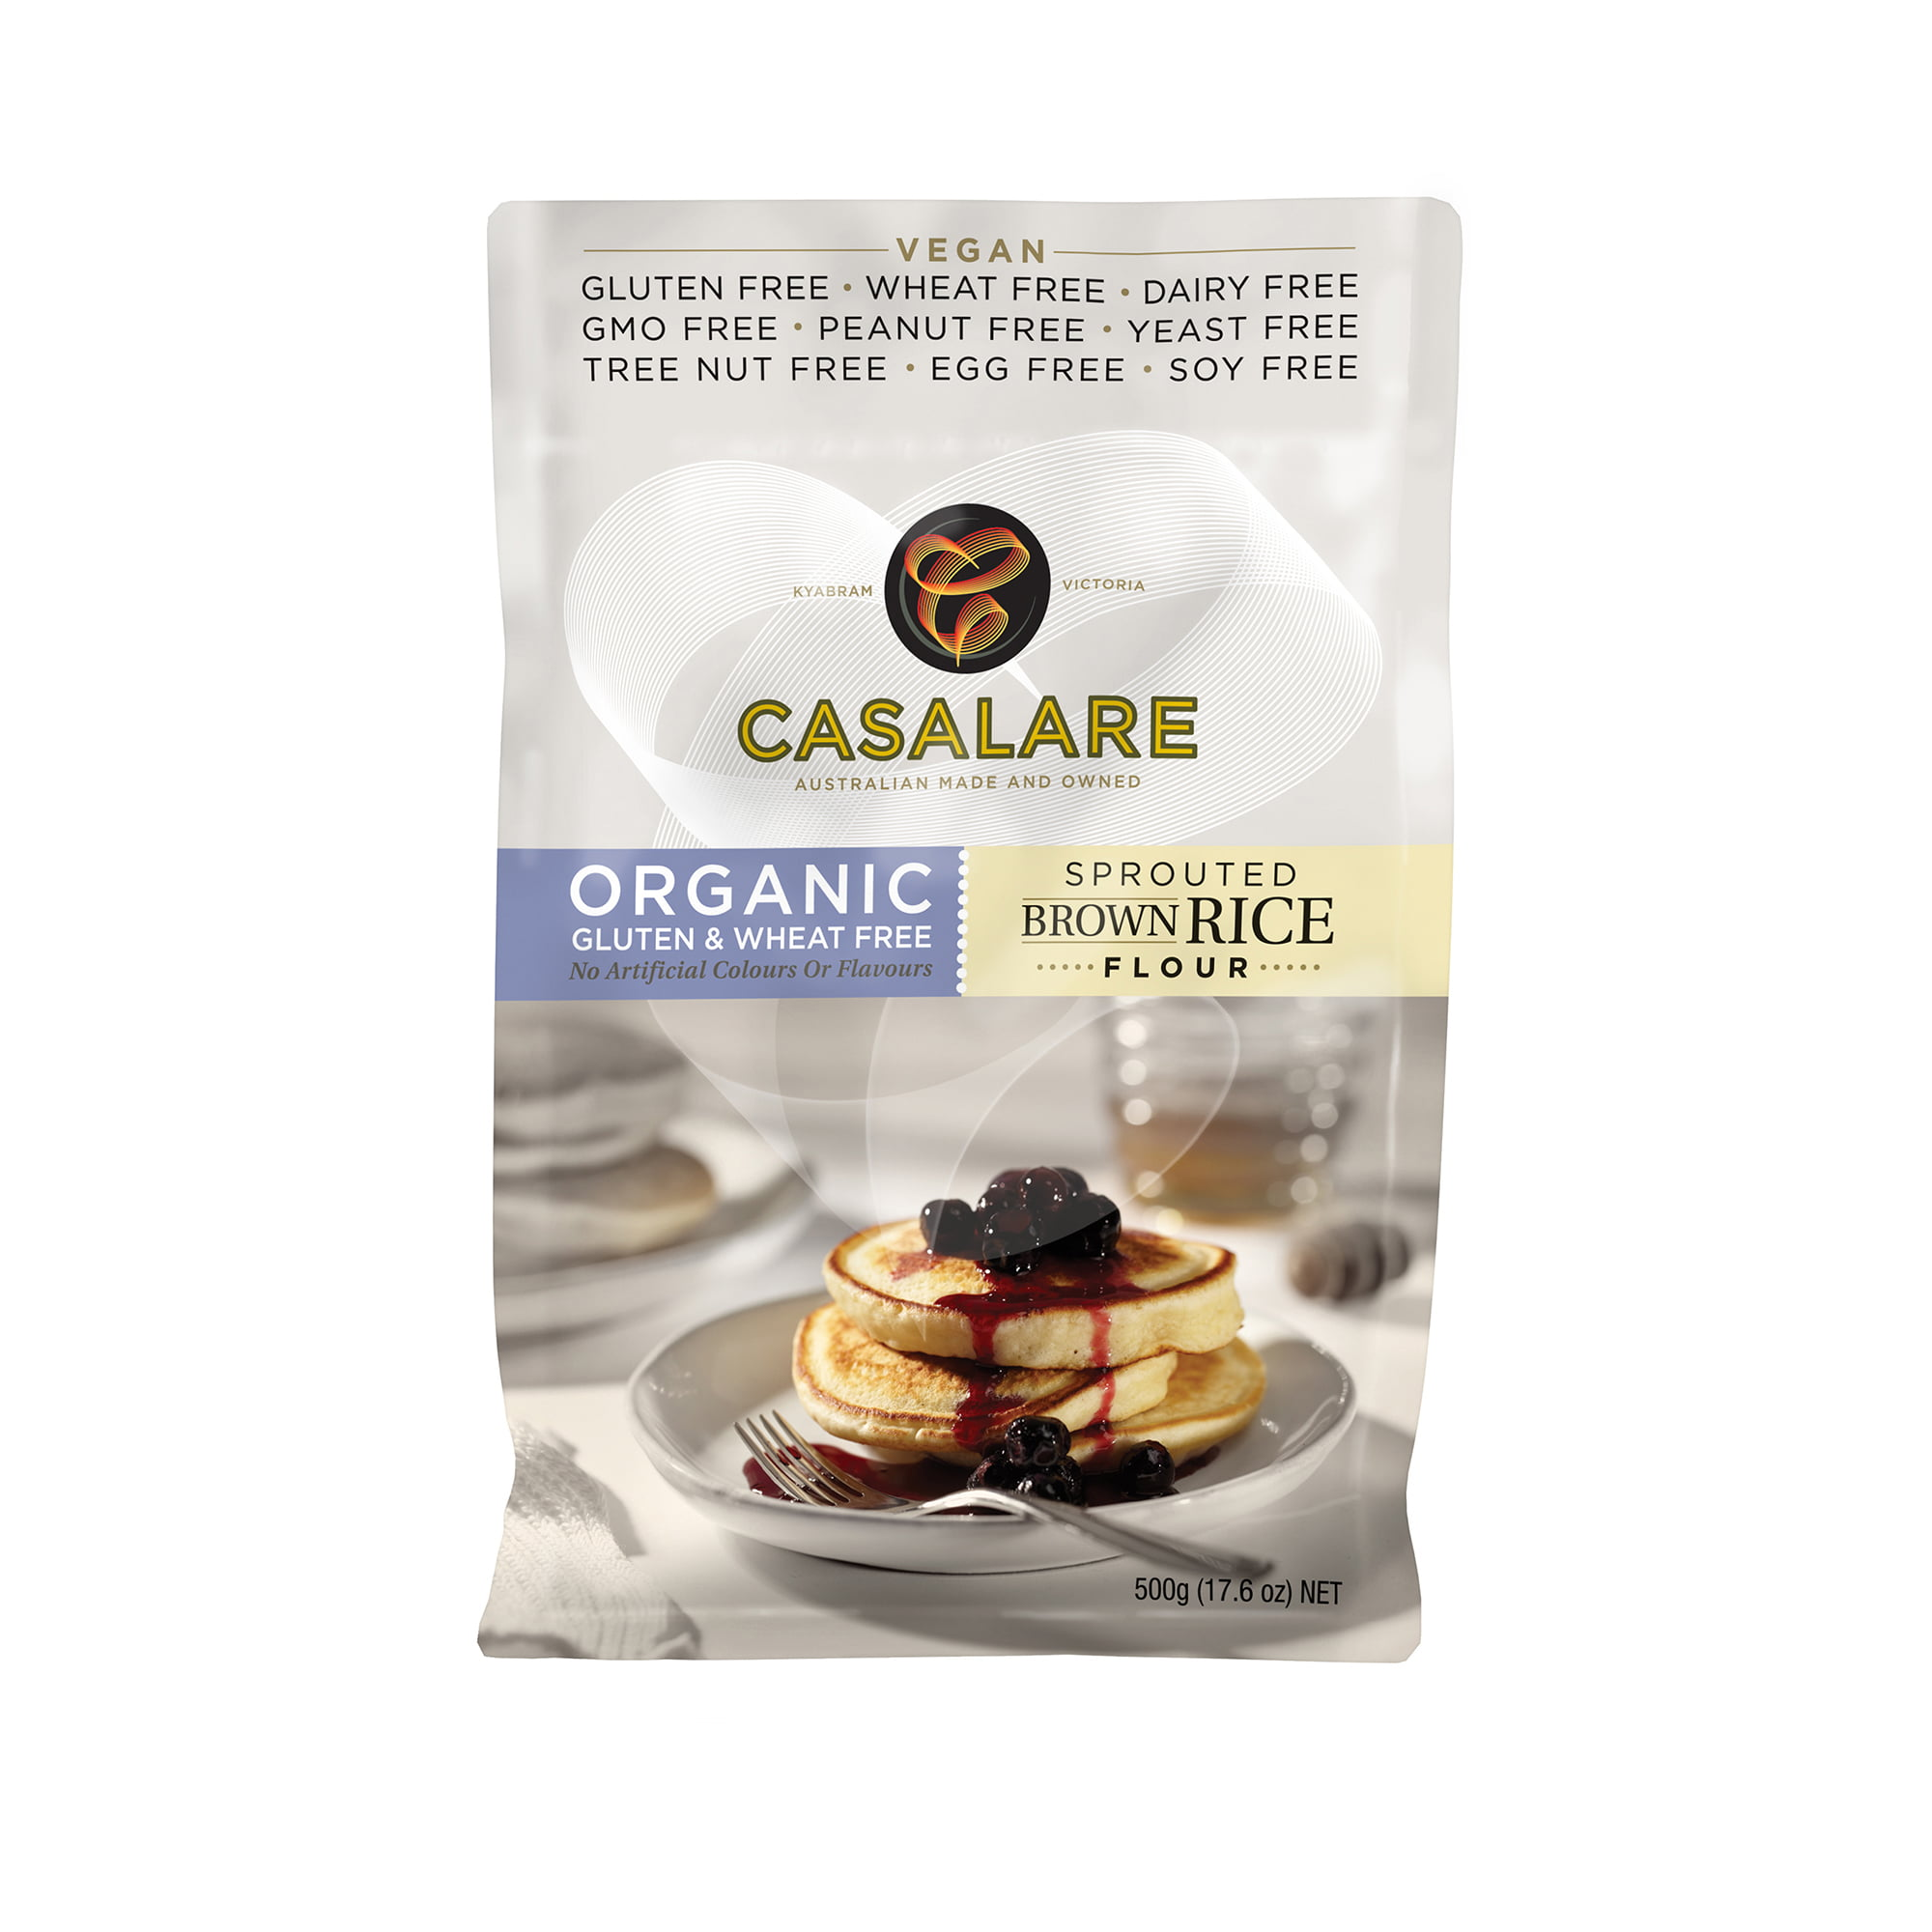 casalare-sproutbrownrice